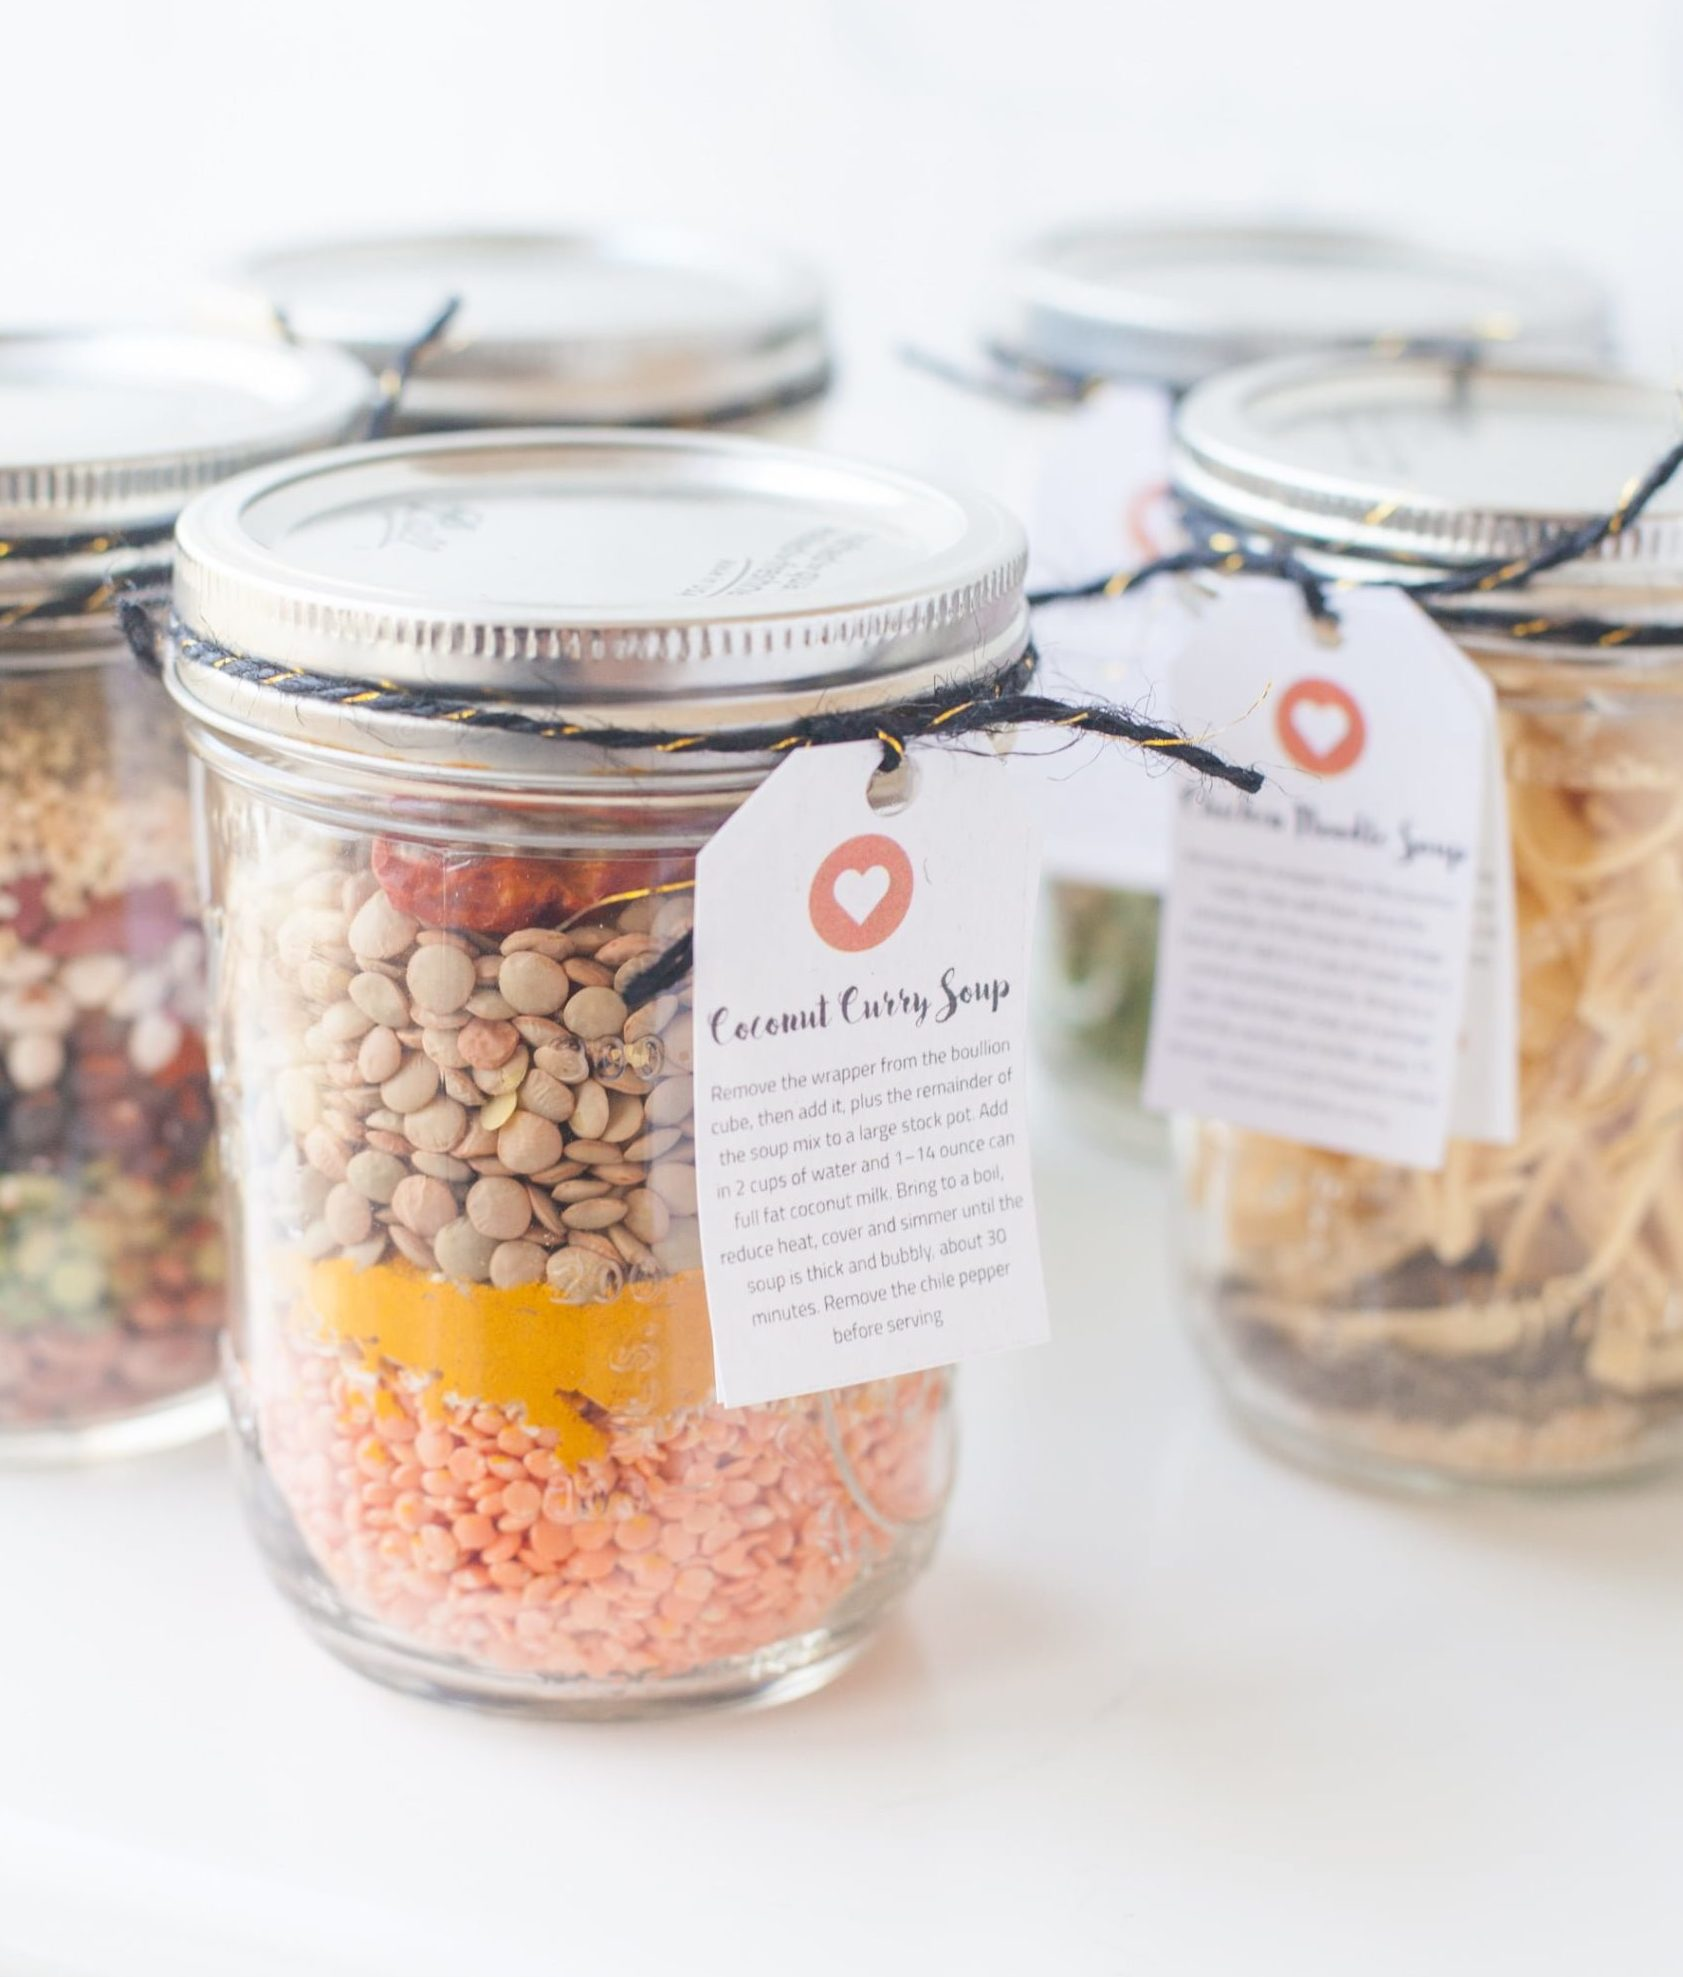 Soup mason jar gifts from Wholefully